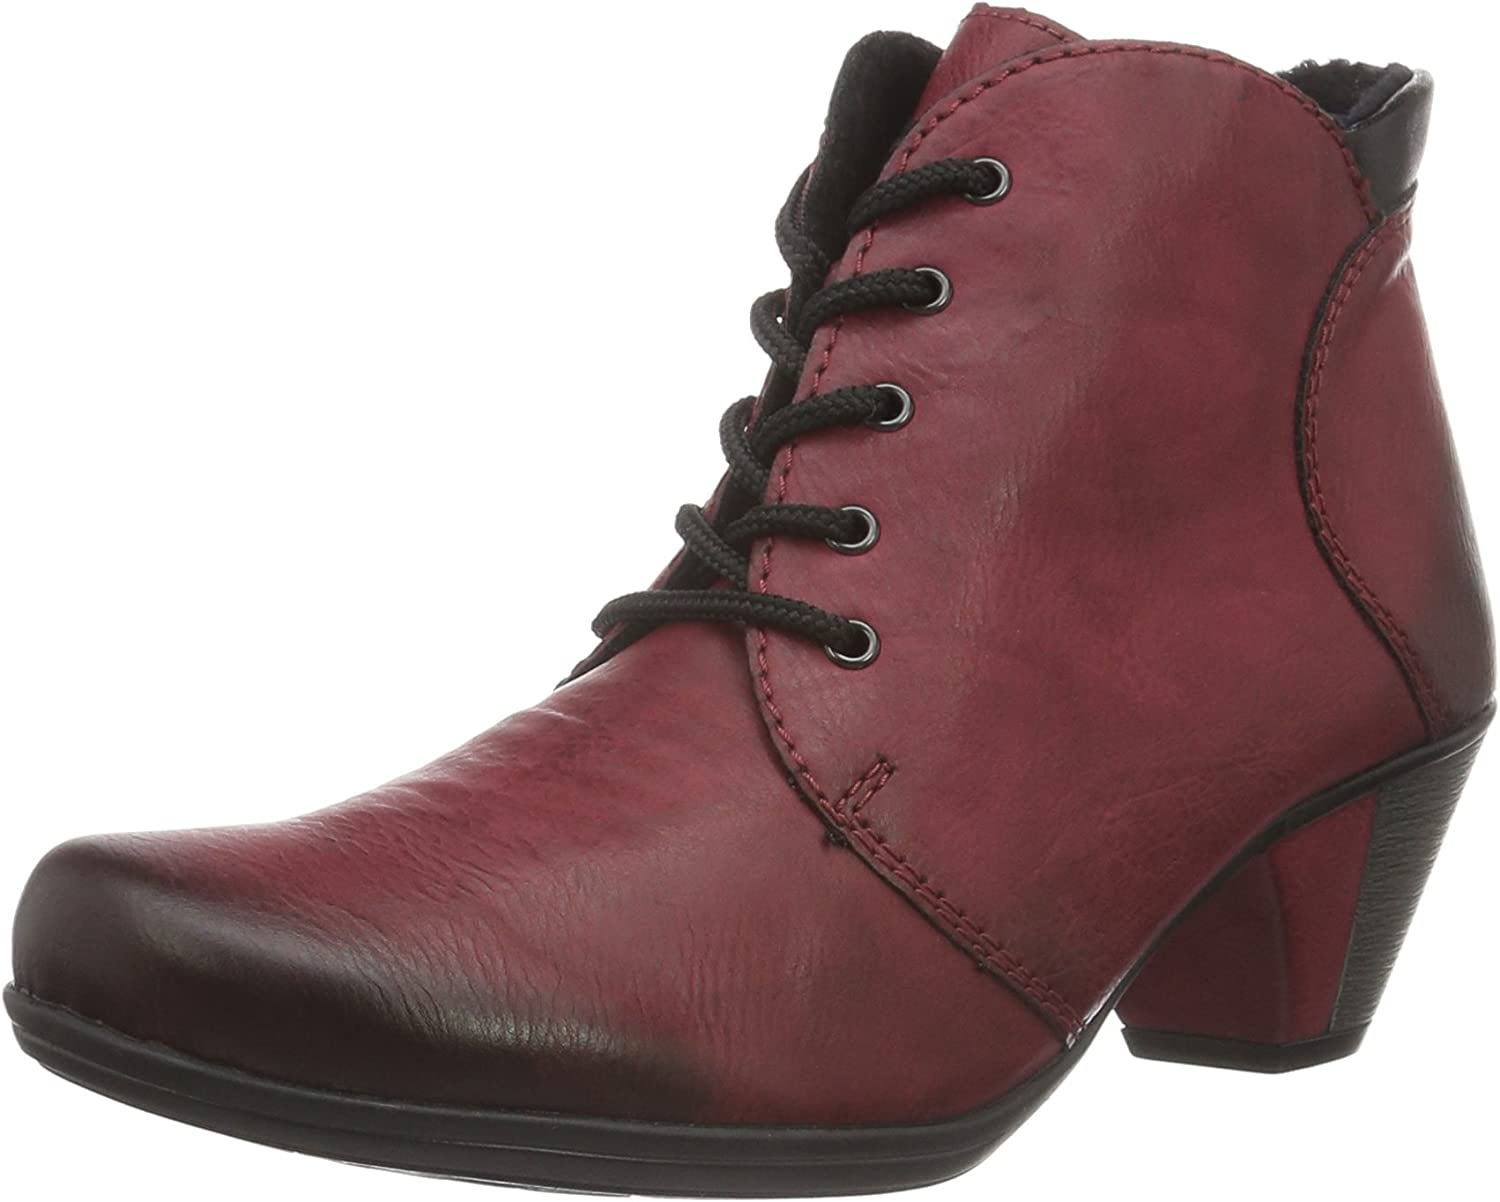 Rieker Women Ankle Boots red, (wine black) Y722035